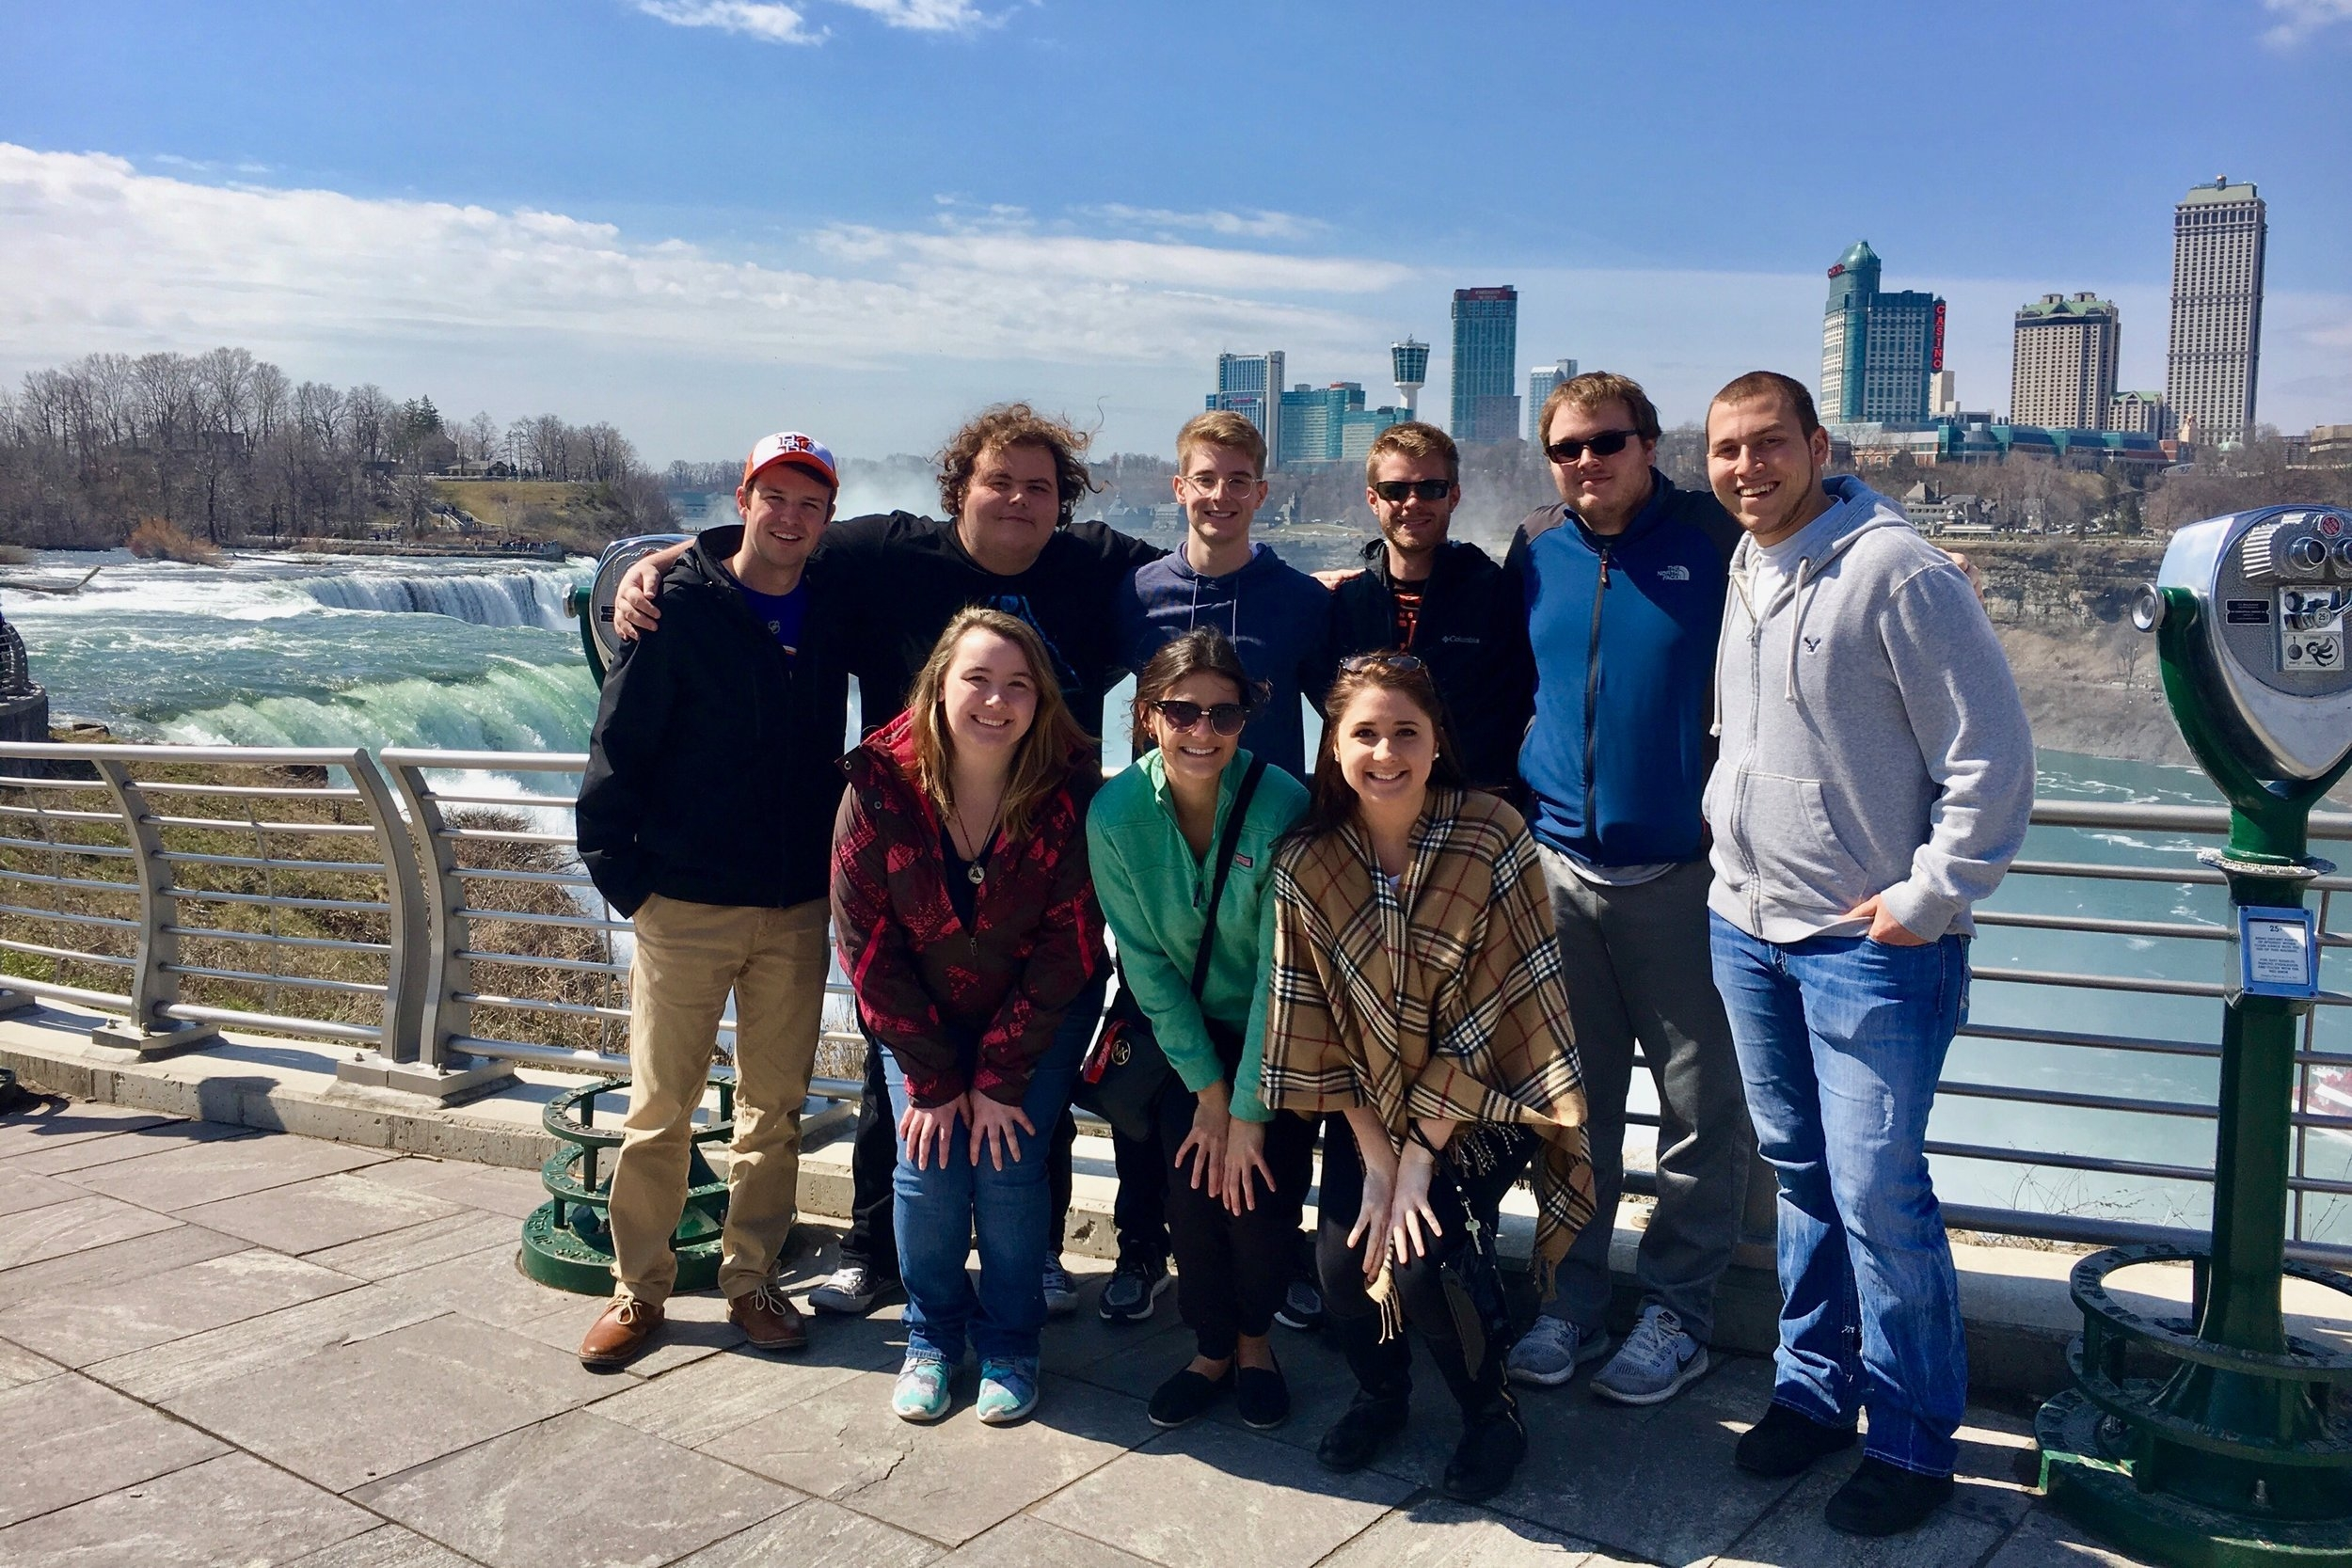 Buffalo, NY - The 2017 Spring Networking Trip took 10 members to Buffalo, Rochester, and Niagara Falls over the course of 3 days. They attended a Rochester Americans game, a Buffalo Bandits lacrosse game, and watched the Buffalo Sabres play against the New York Islanders. They also toured the Key Bank Center and Rochester's facility. After their tours, members met with professionals from the marketing team for the Buffalo Sabres and Bandits as well as a business operations executive from the Americans.